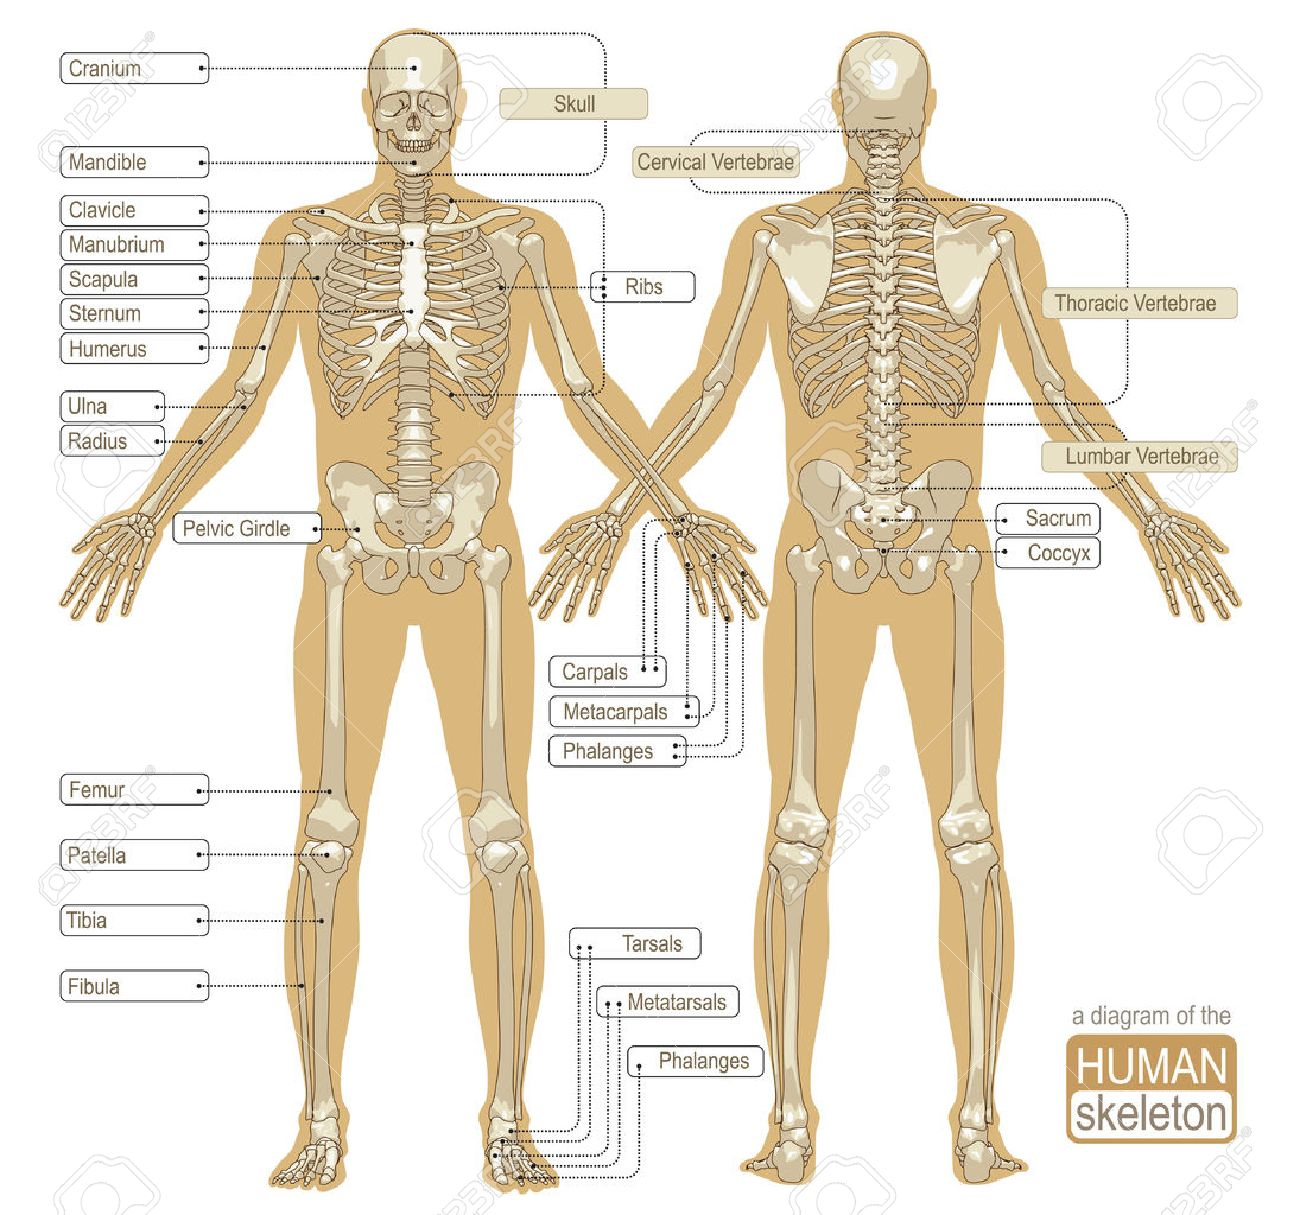 A Diagram Of The Human Skeleton With Titled Main Parts Of The